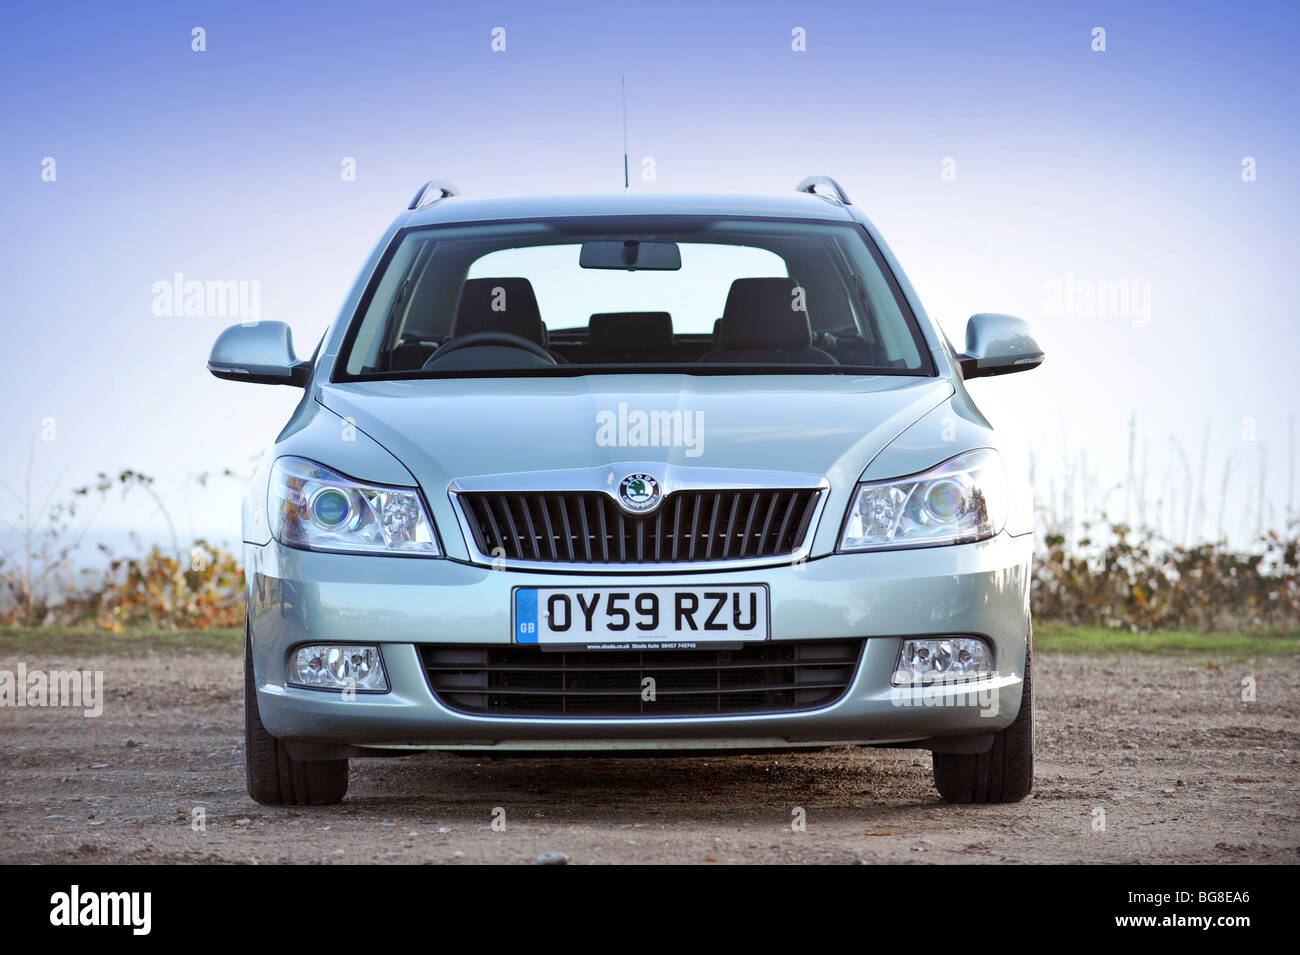 2009 Skoda Octavia break diesel/shot Photo Stock